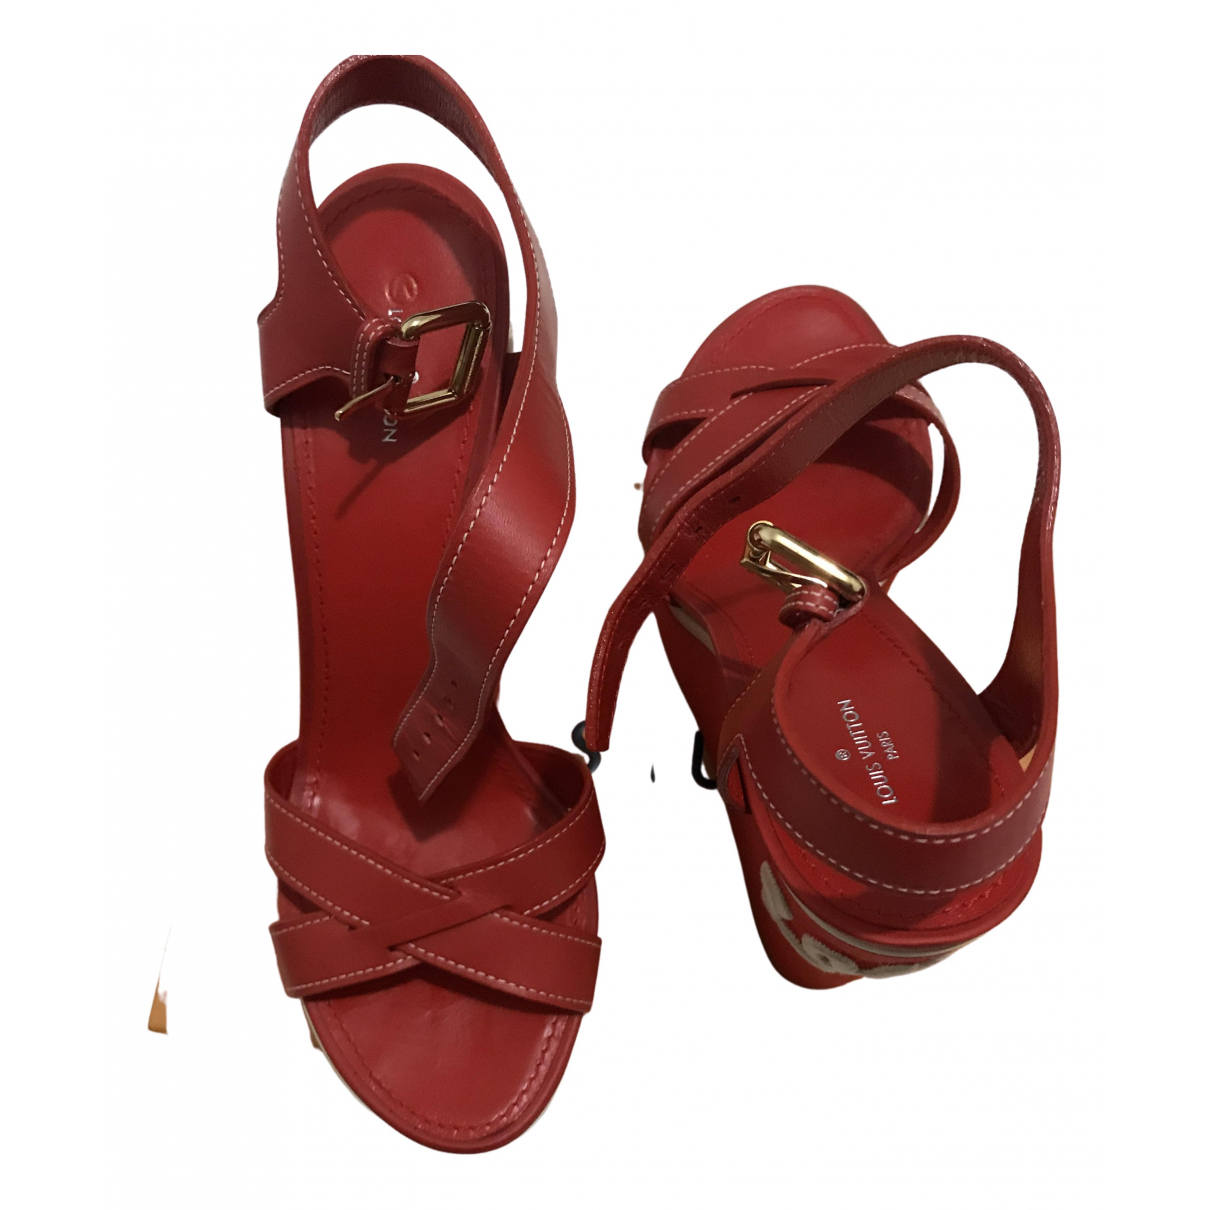 Louis Vuitton N Red Leather Sandals for Women 39.5 EU